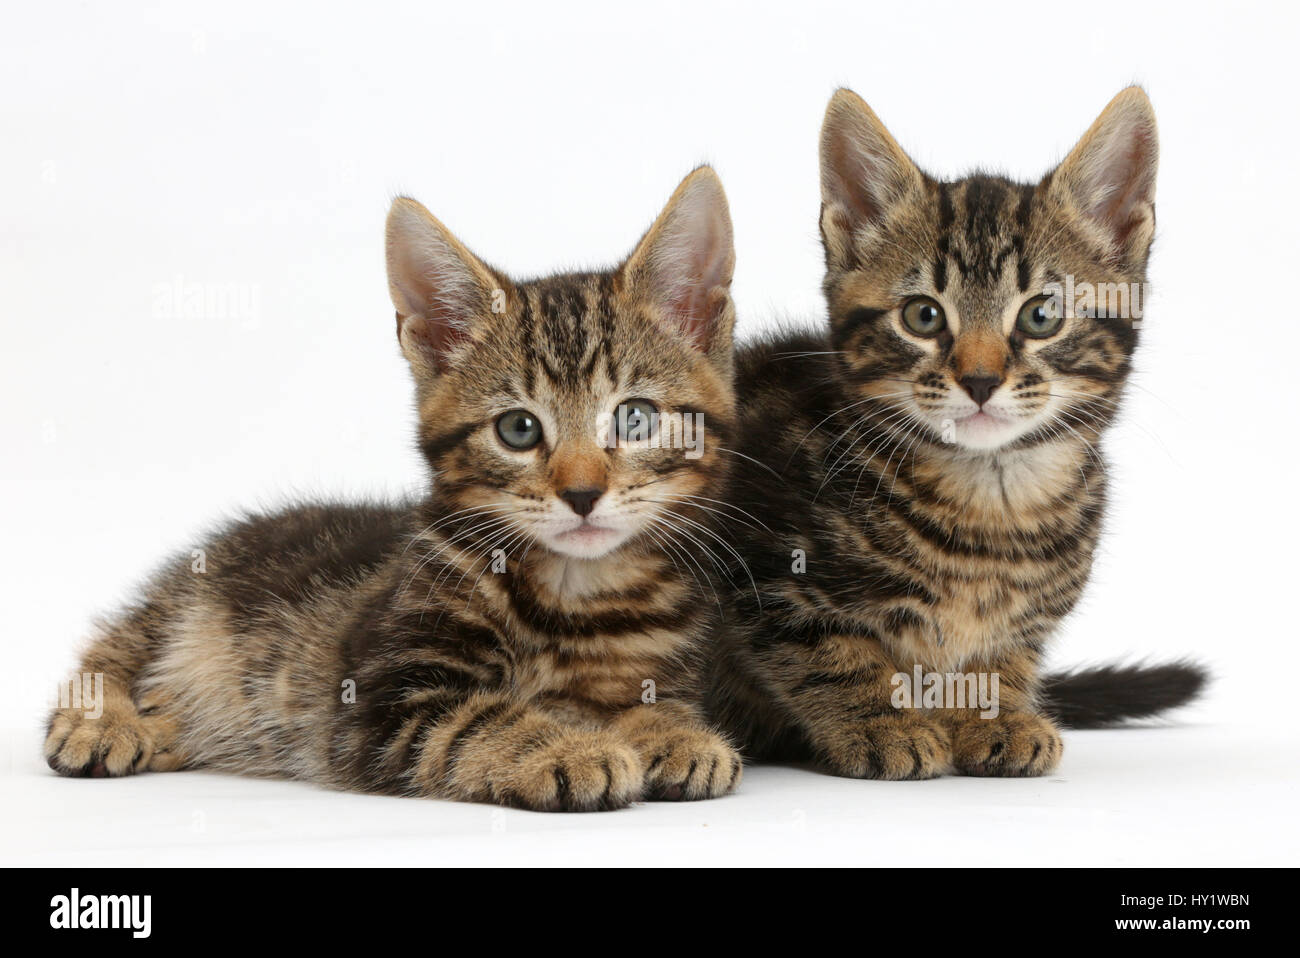 Deux chatons tabby, aux salissures et Picasso, 8 semaines. Photo Stock